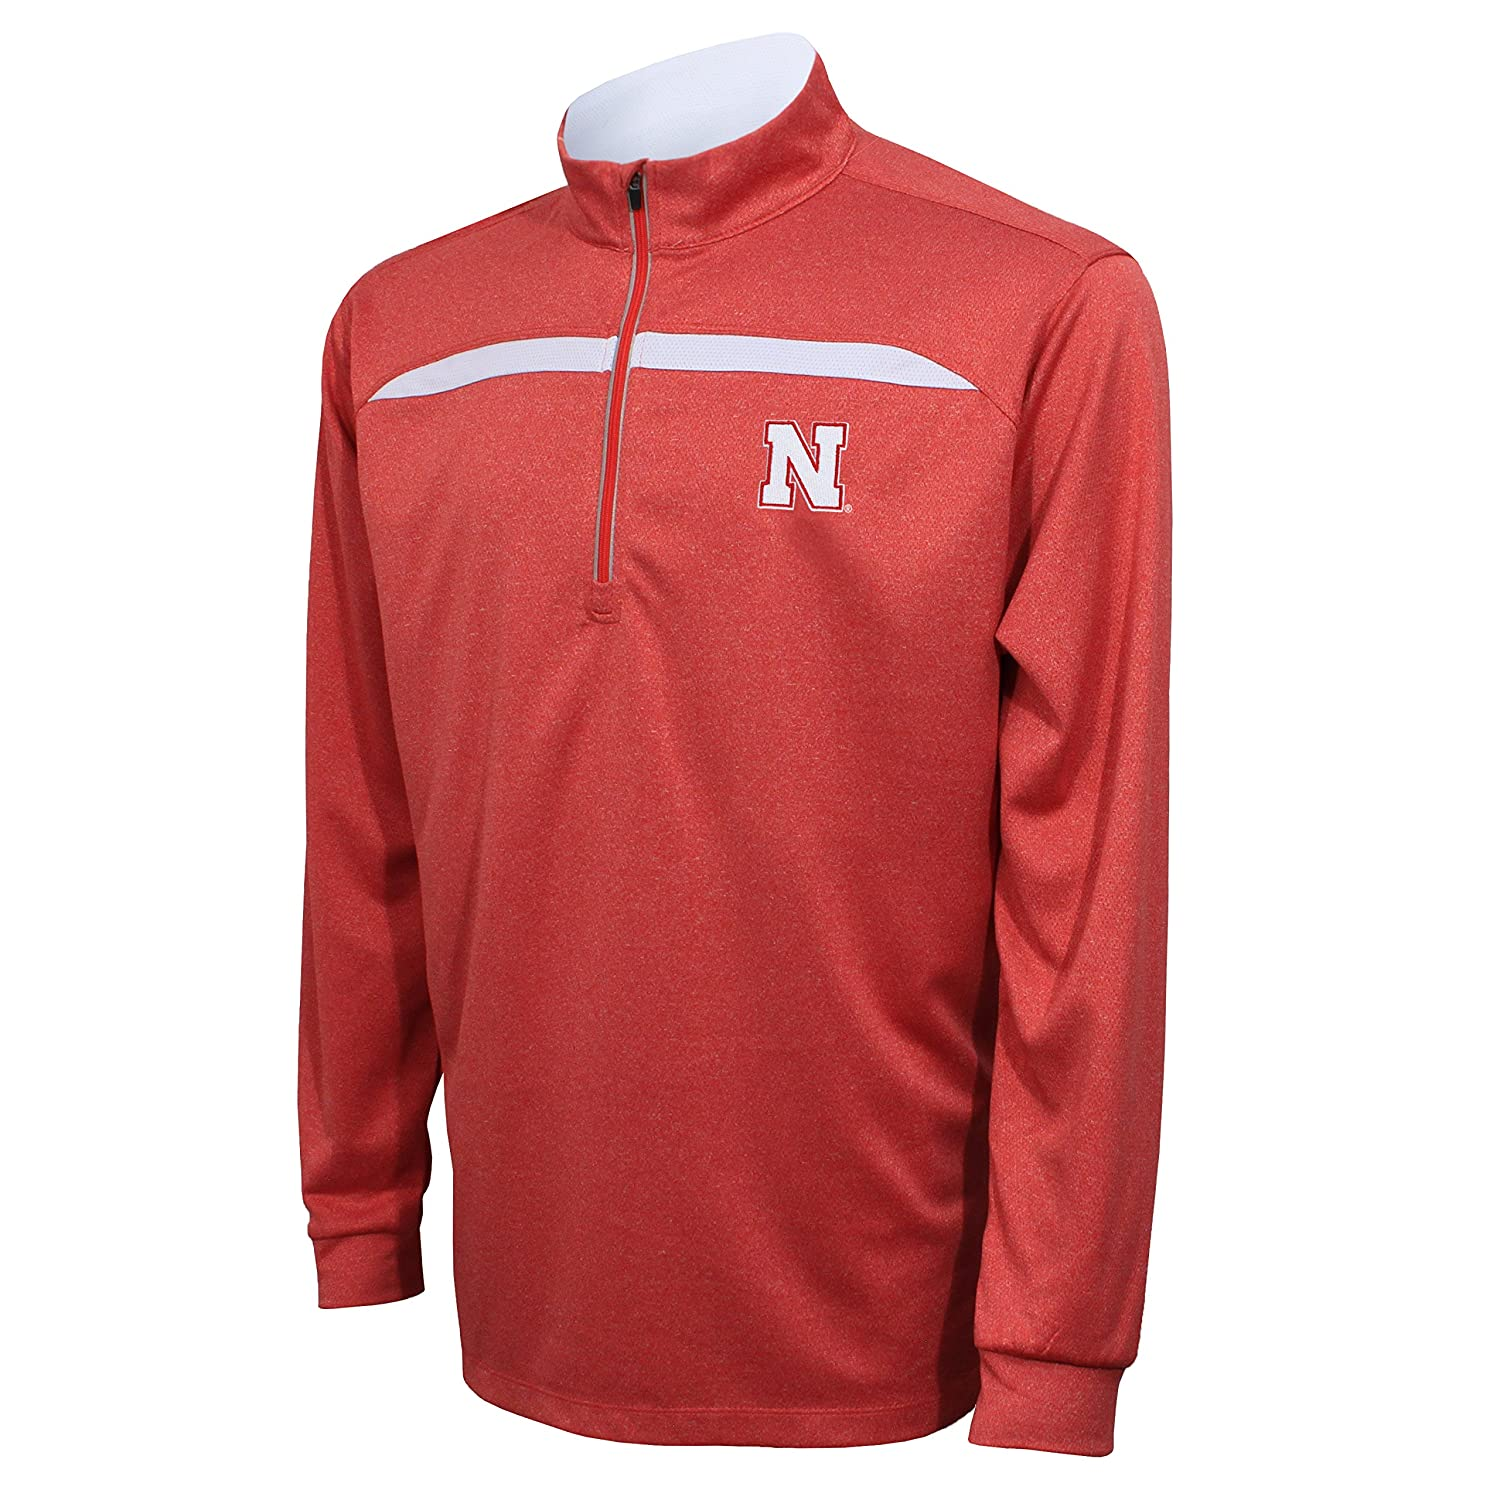 Red White XLarge NCAA Mens NCAA Men's Crable Quarter Zip with Contrast Panel